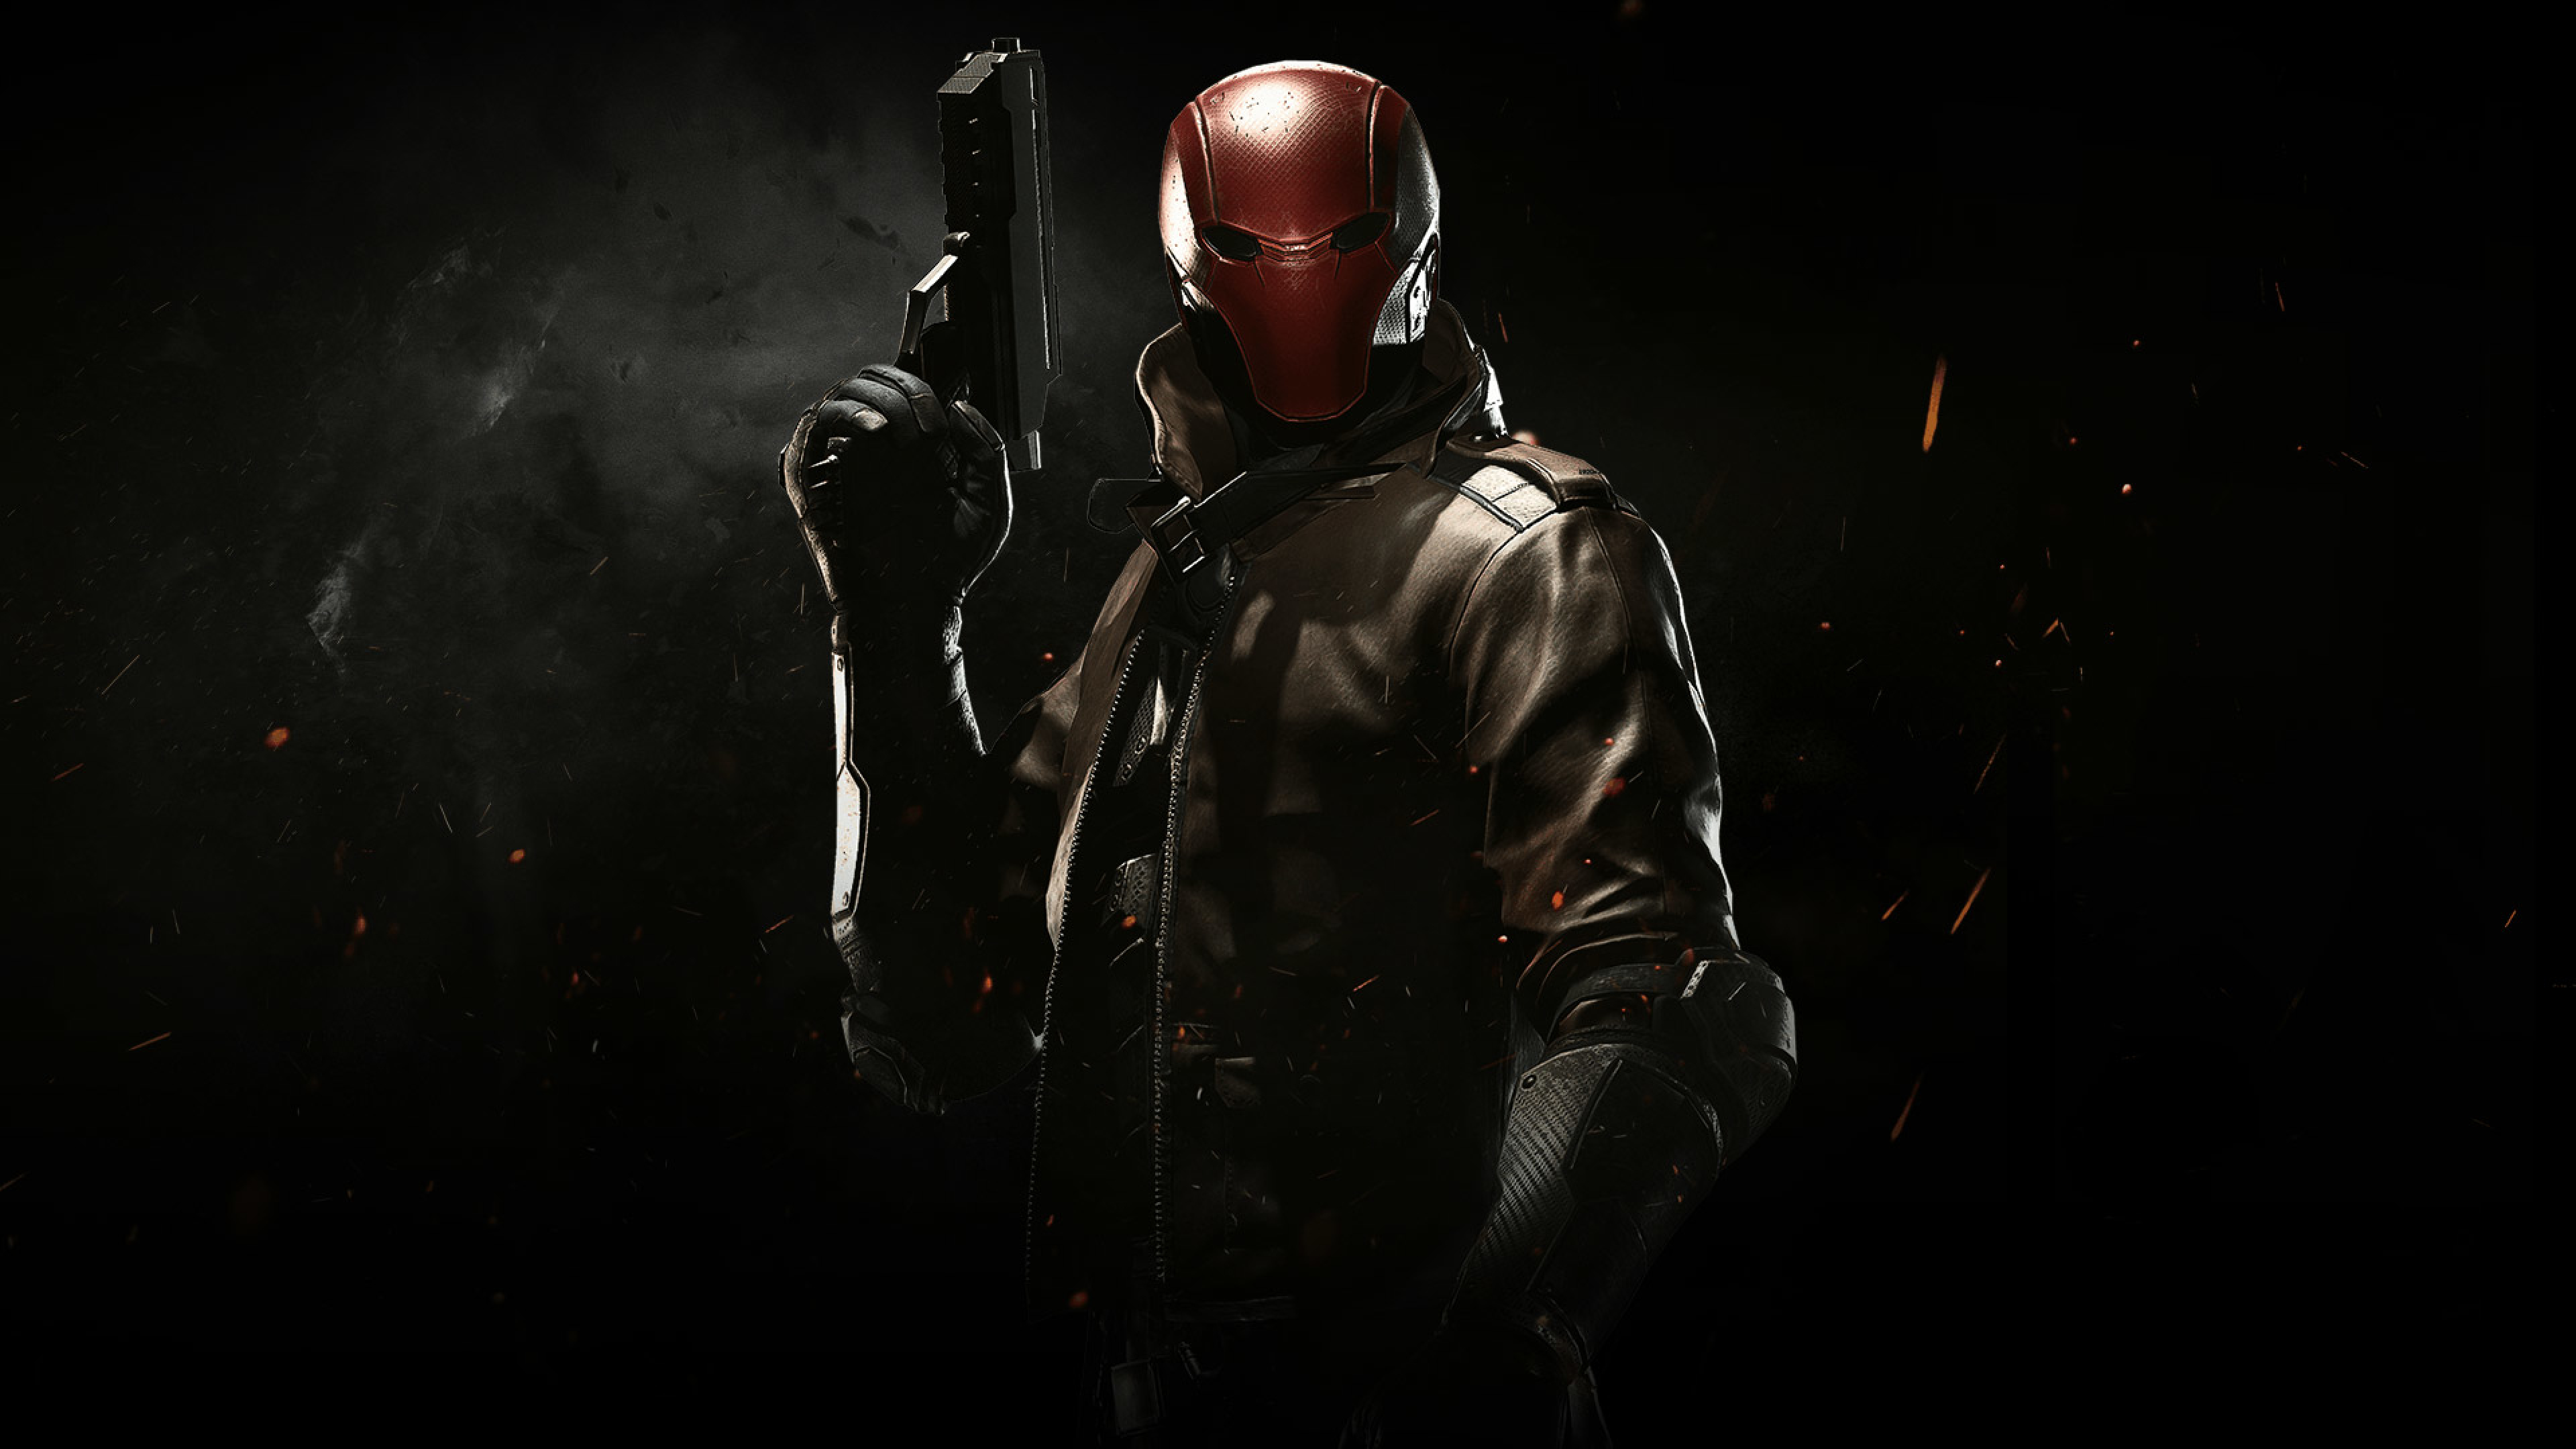 3840x2160 red hood in injustice 2 4k wallpaper hd games 4k wallpapers images photos and background 3840x2160 red hood in injustice 2 4k